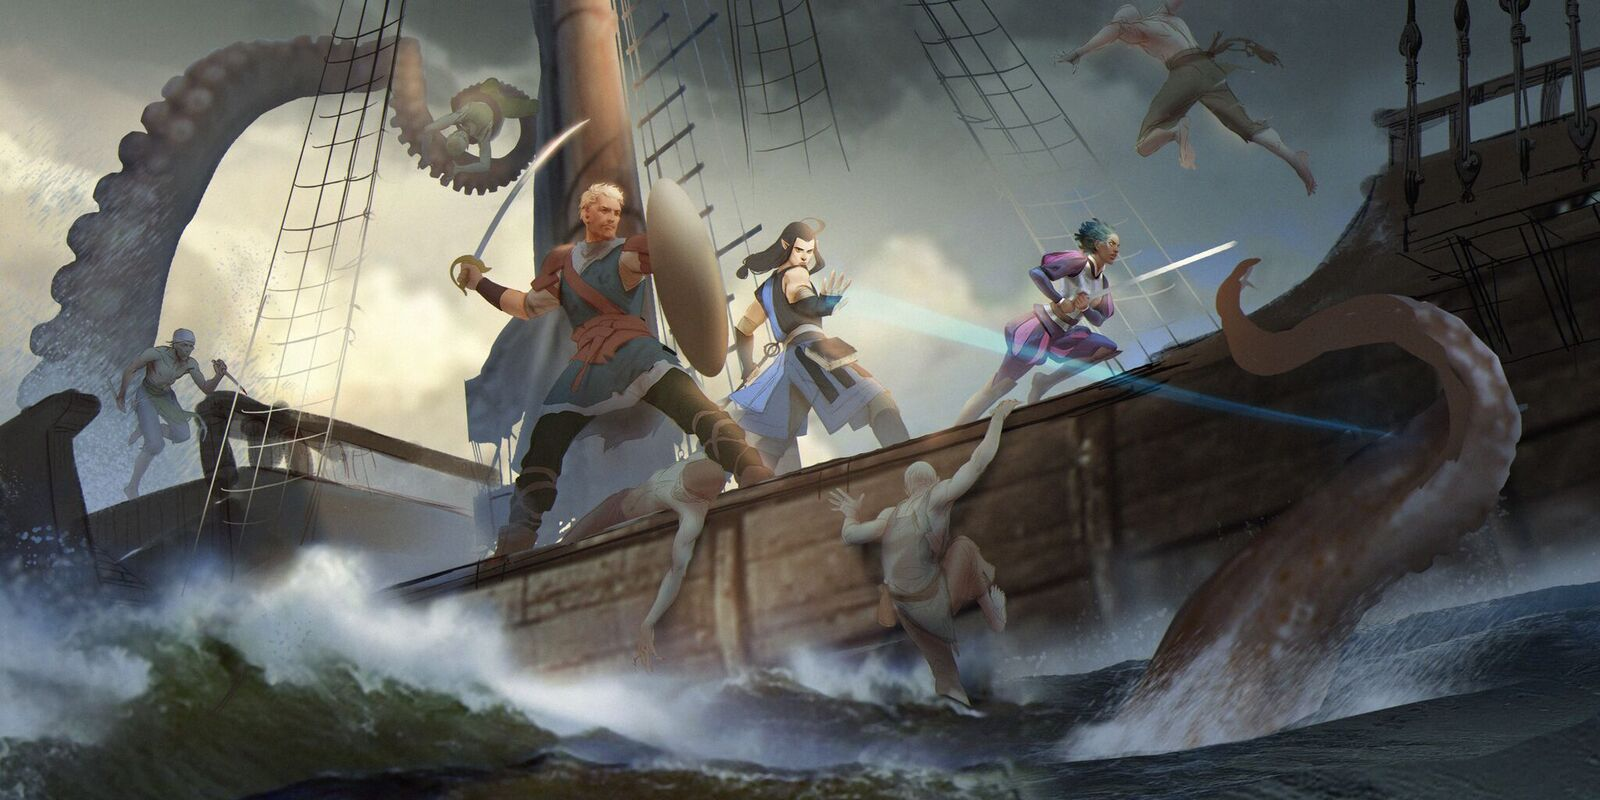 Exclusive: An early rendition of Deadfire's key art, used in promotion during the game's Fig campaign. (Image courtesy of Obsidian.)